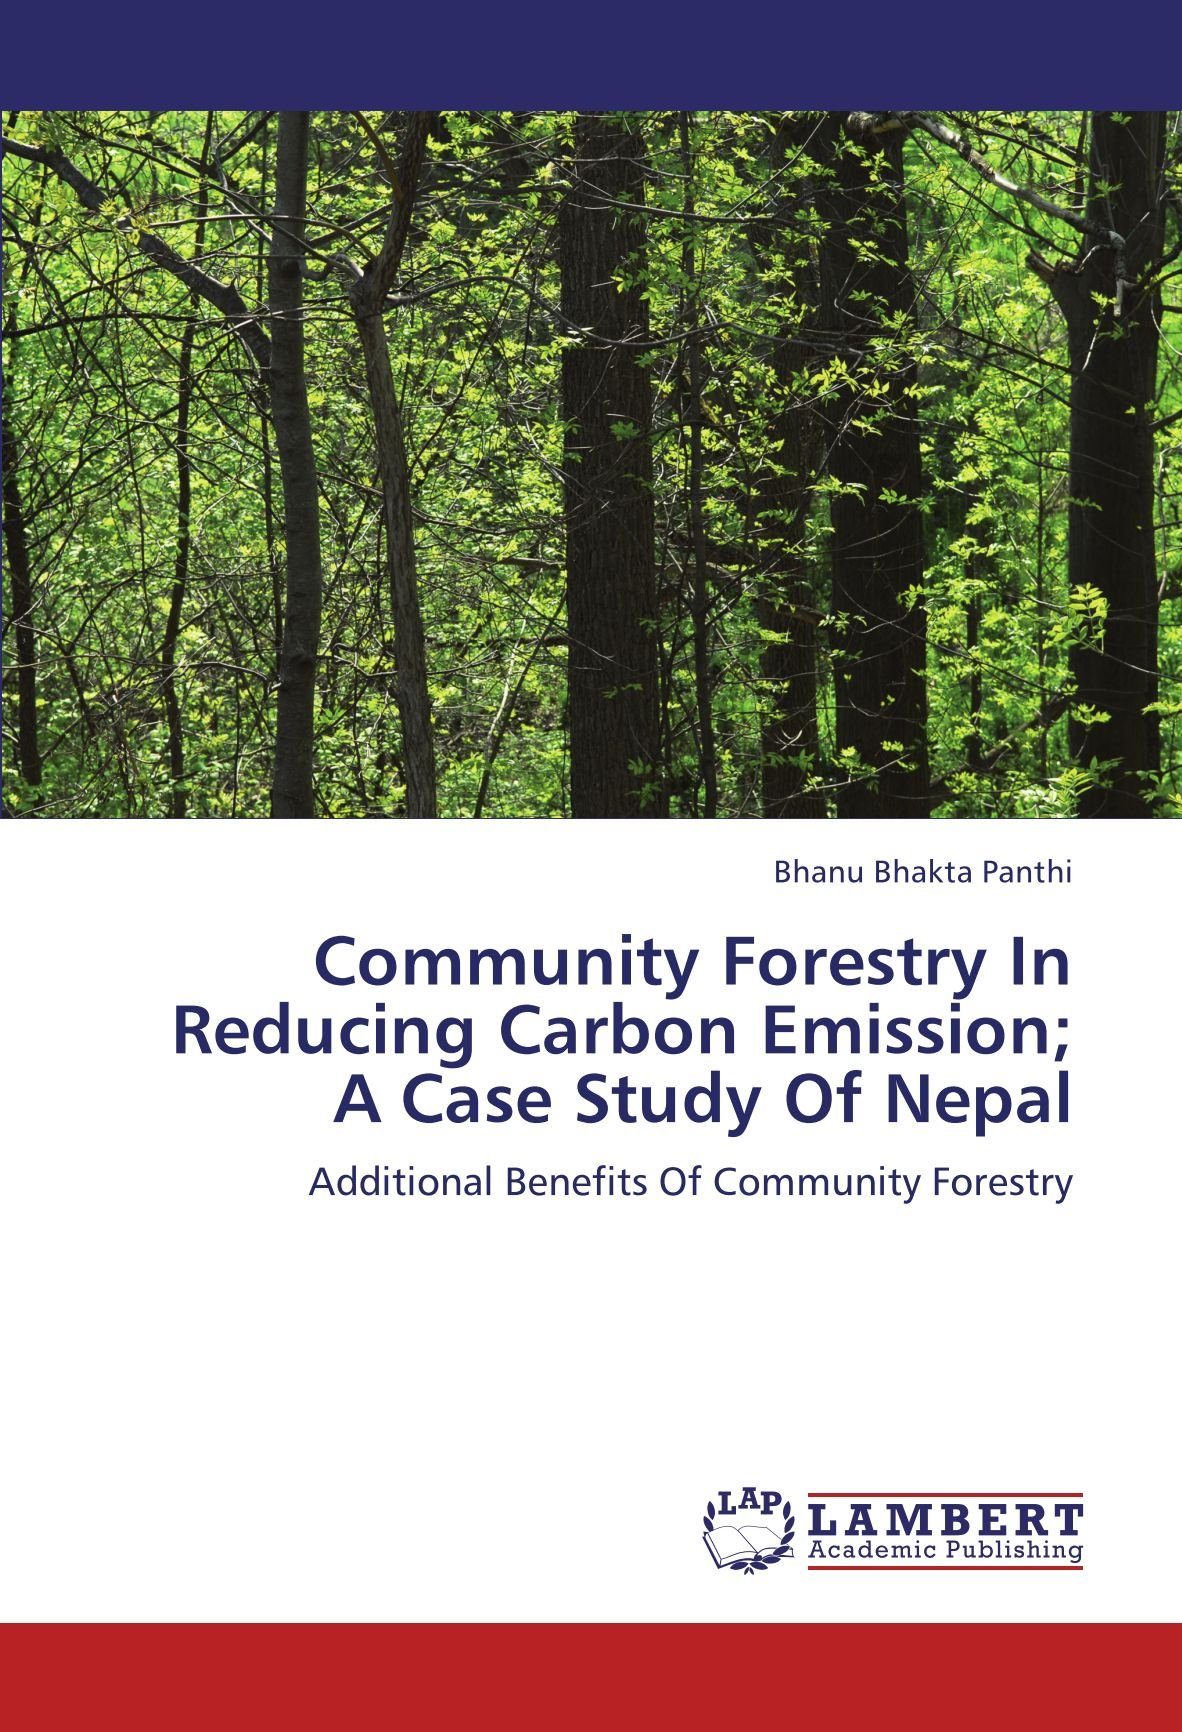 Download Community Forestry In Reducing Carbon Emission; A Case Study Of Nepal: Additional Benefits Of Community Forestry PDF